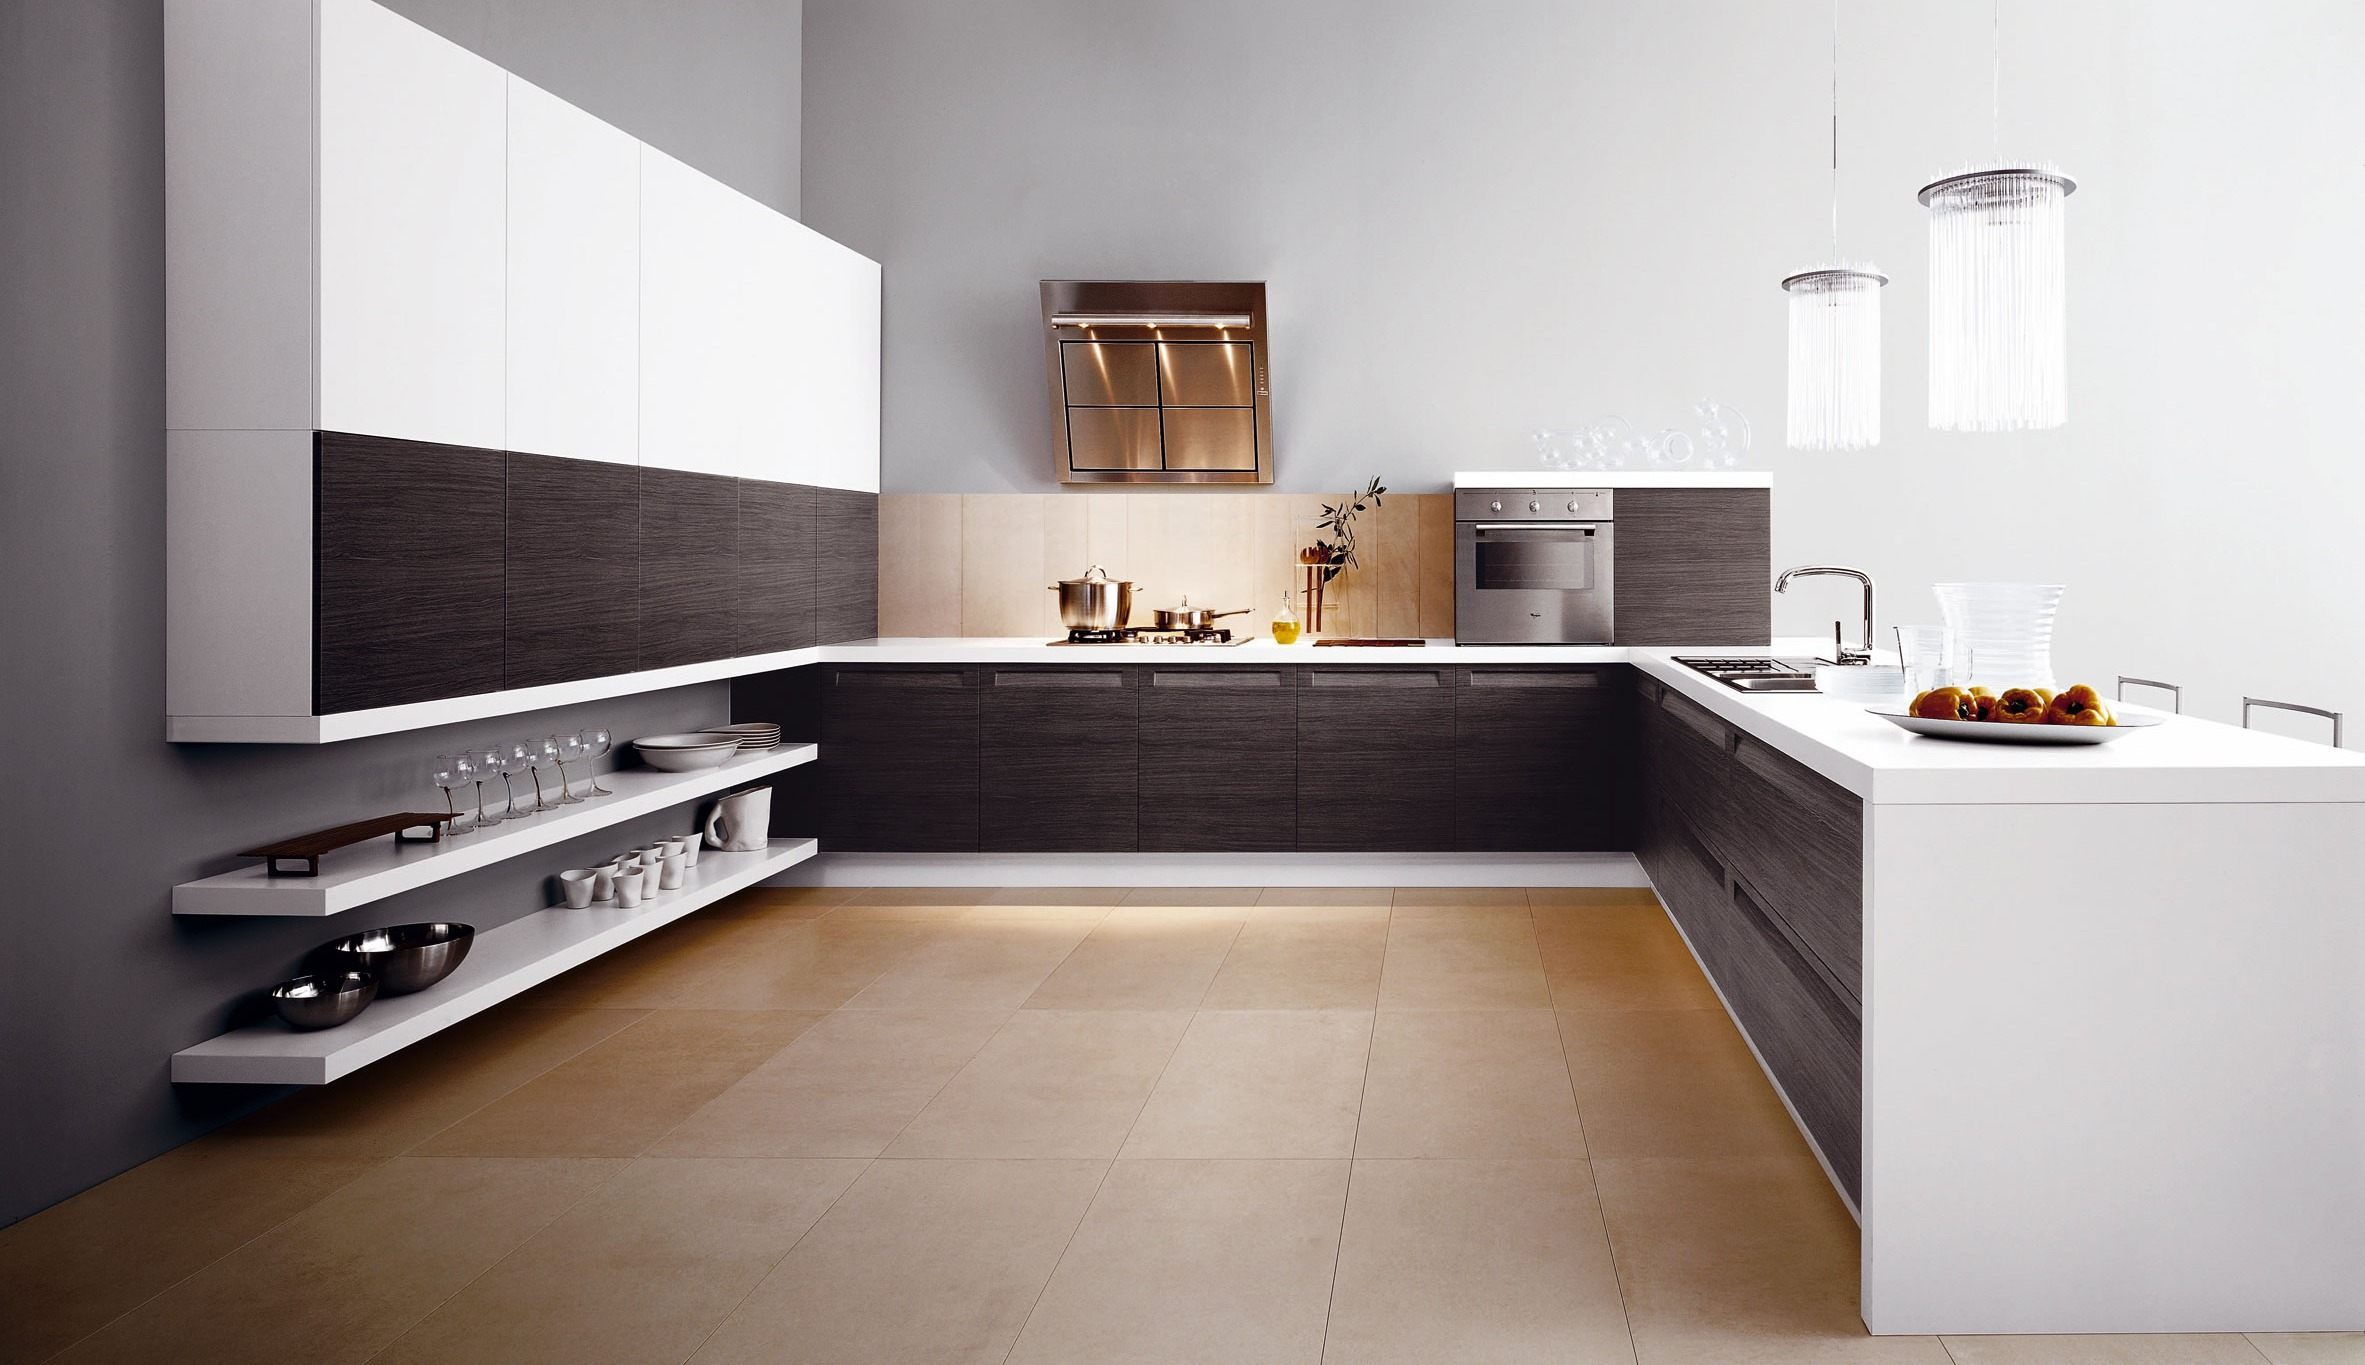 Contemporary Italian Kitchen Floors (Image 3 of 10)